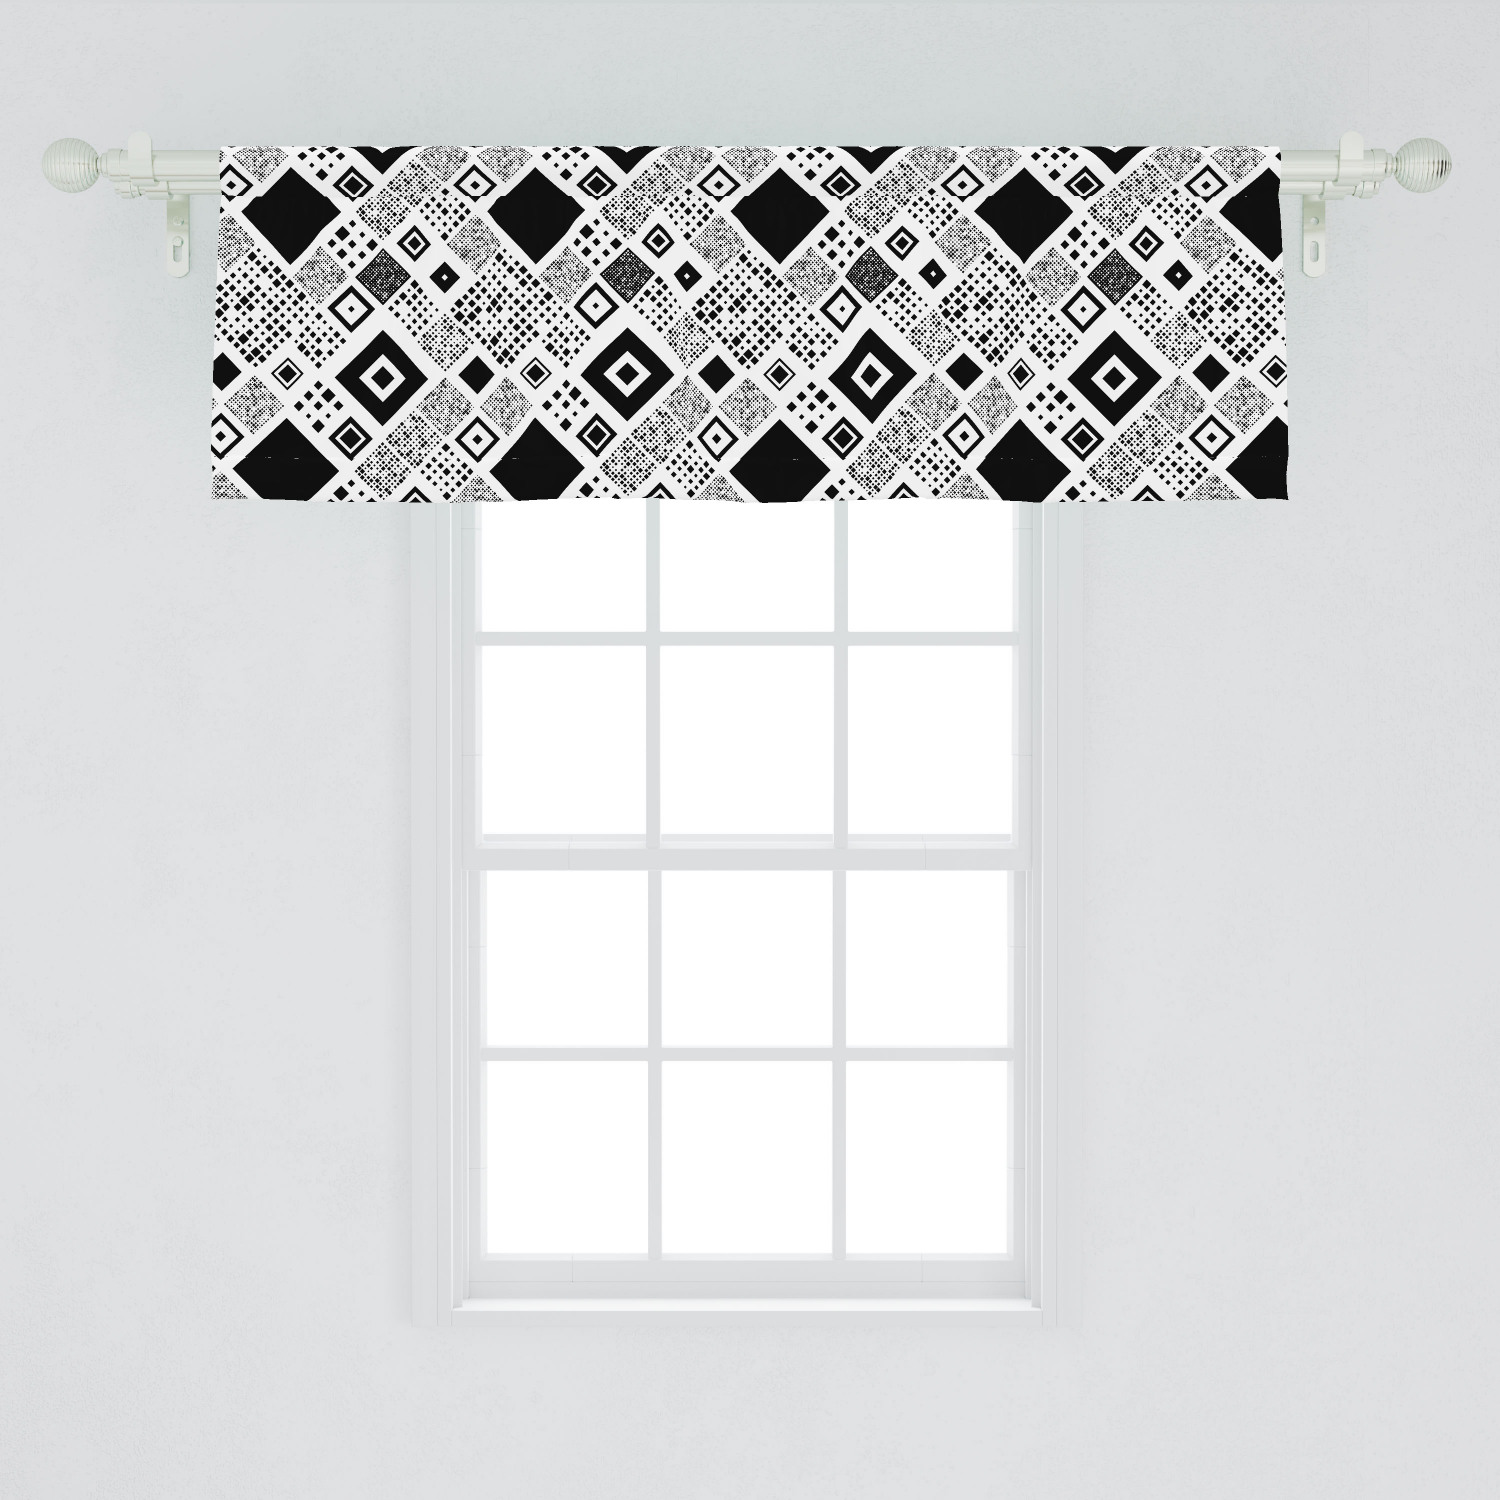 Picture of: Black And White Window Valance Geometrical Diagonal Pattern With Various Different Squares Contemporary Curtain Valance For Kitchen Bedroom Decor With Rod Pocket By Ambesonne Walmart Com Walmart Com